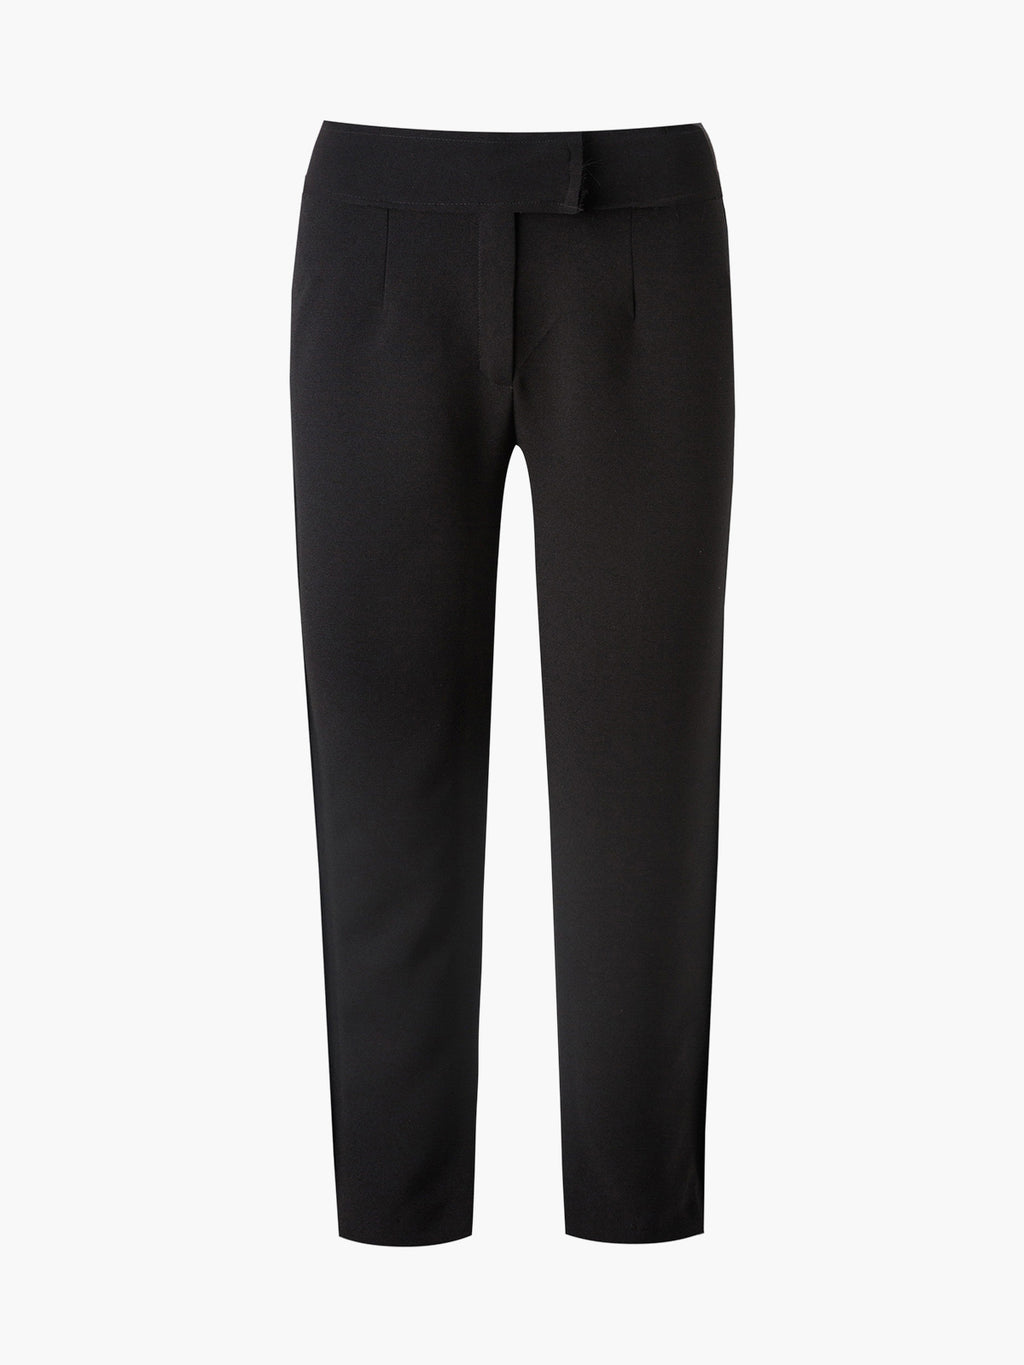 Bianca Pants | Black Crepe